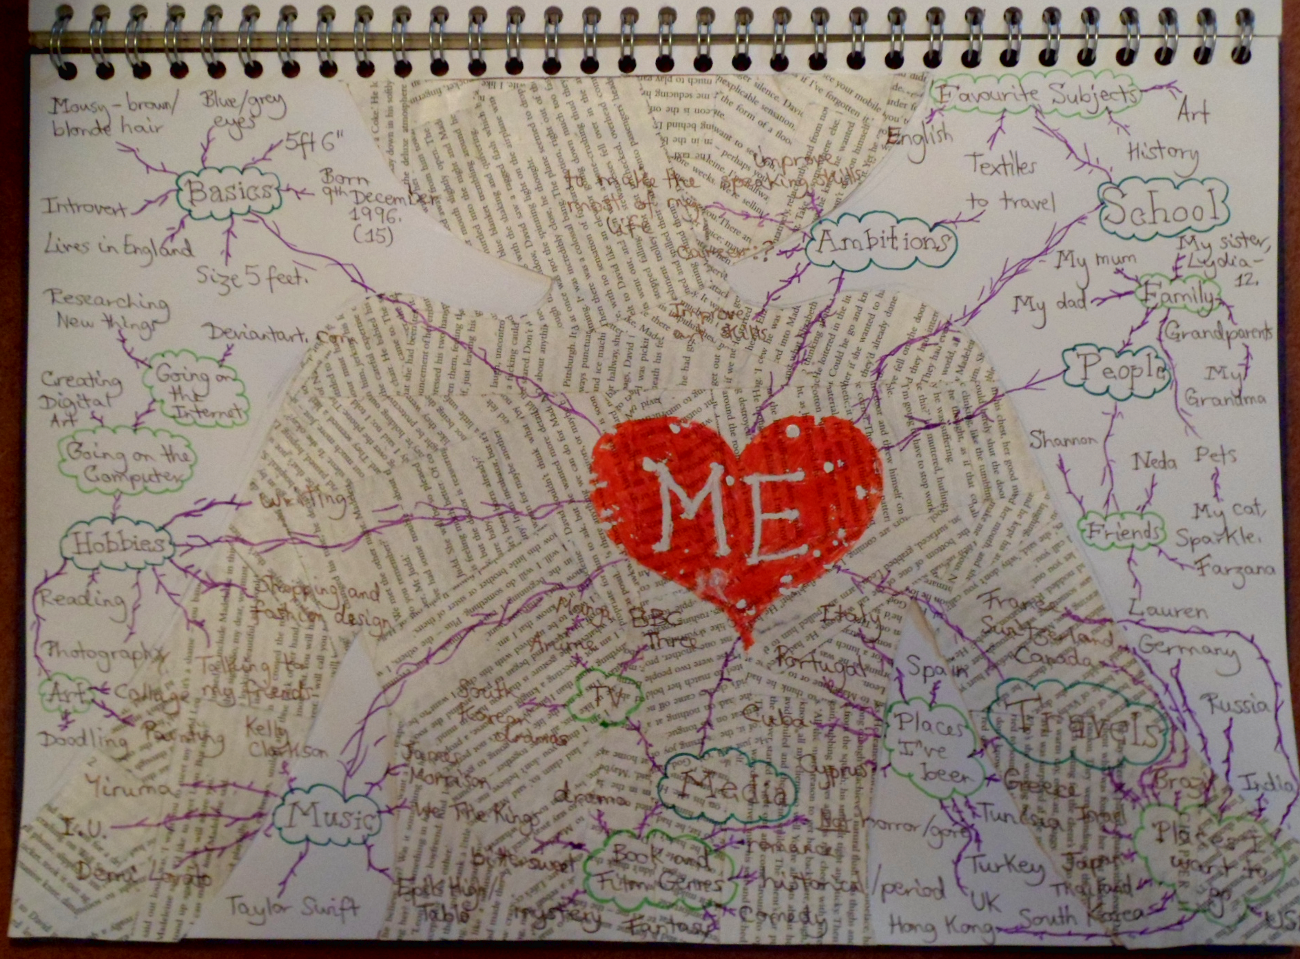 Gcse Art Year 10 A Mind Map About Me By Daintystain On Deviantart